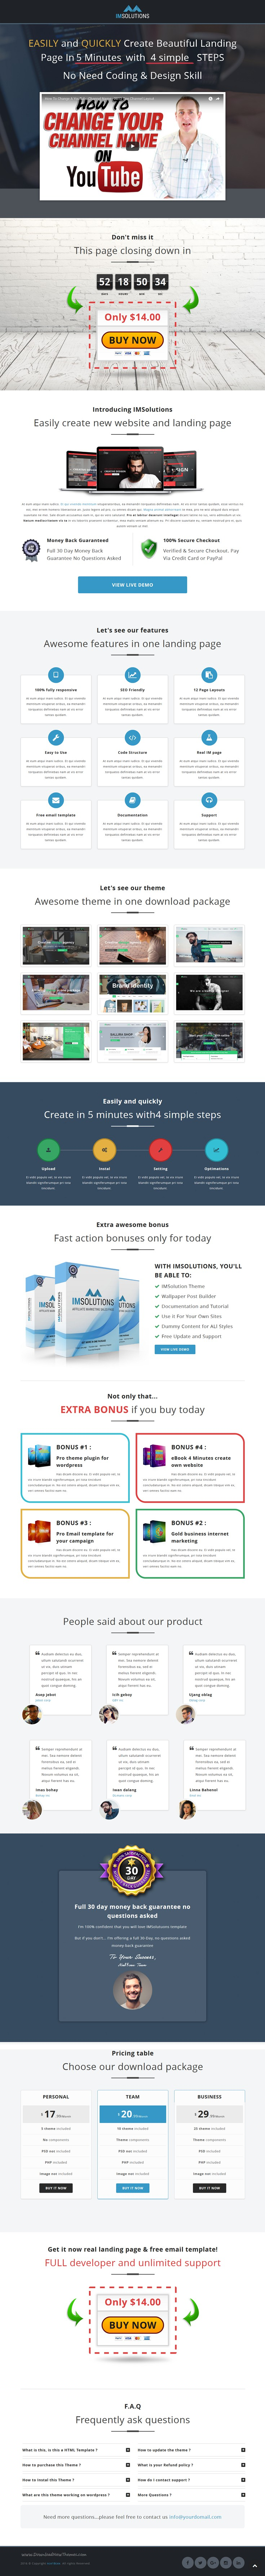 Imsolutions Sales Page For Affiliate Marketing  Affiliate